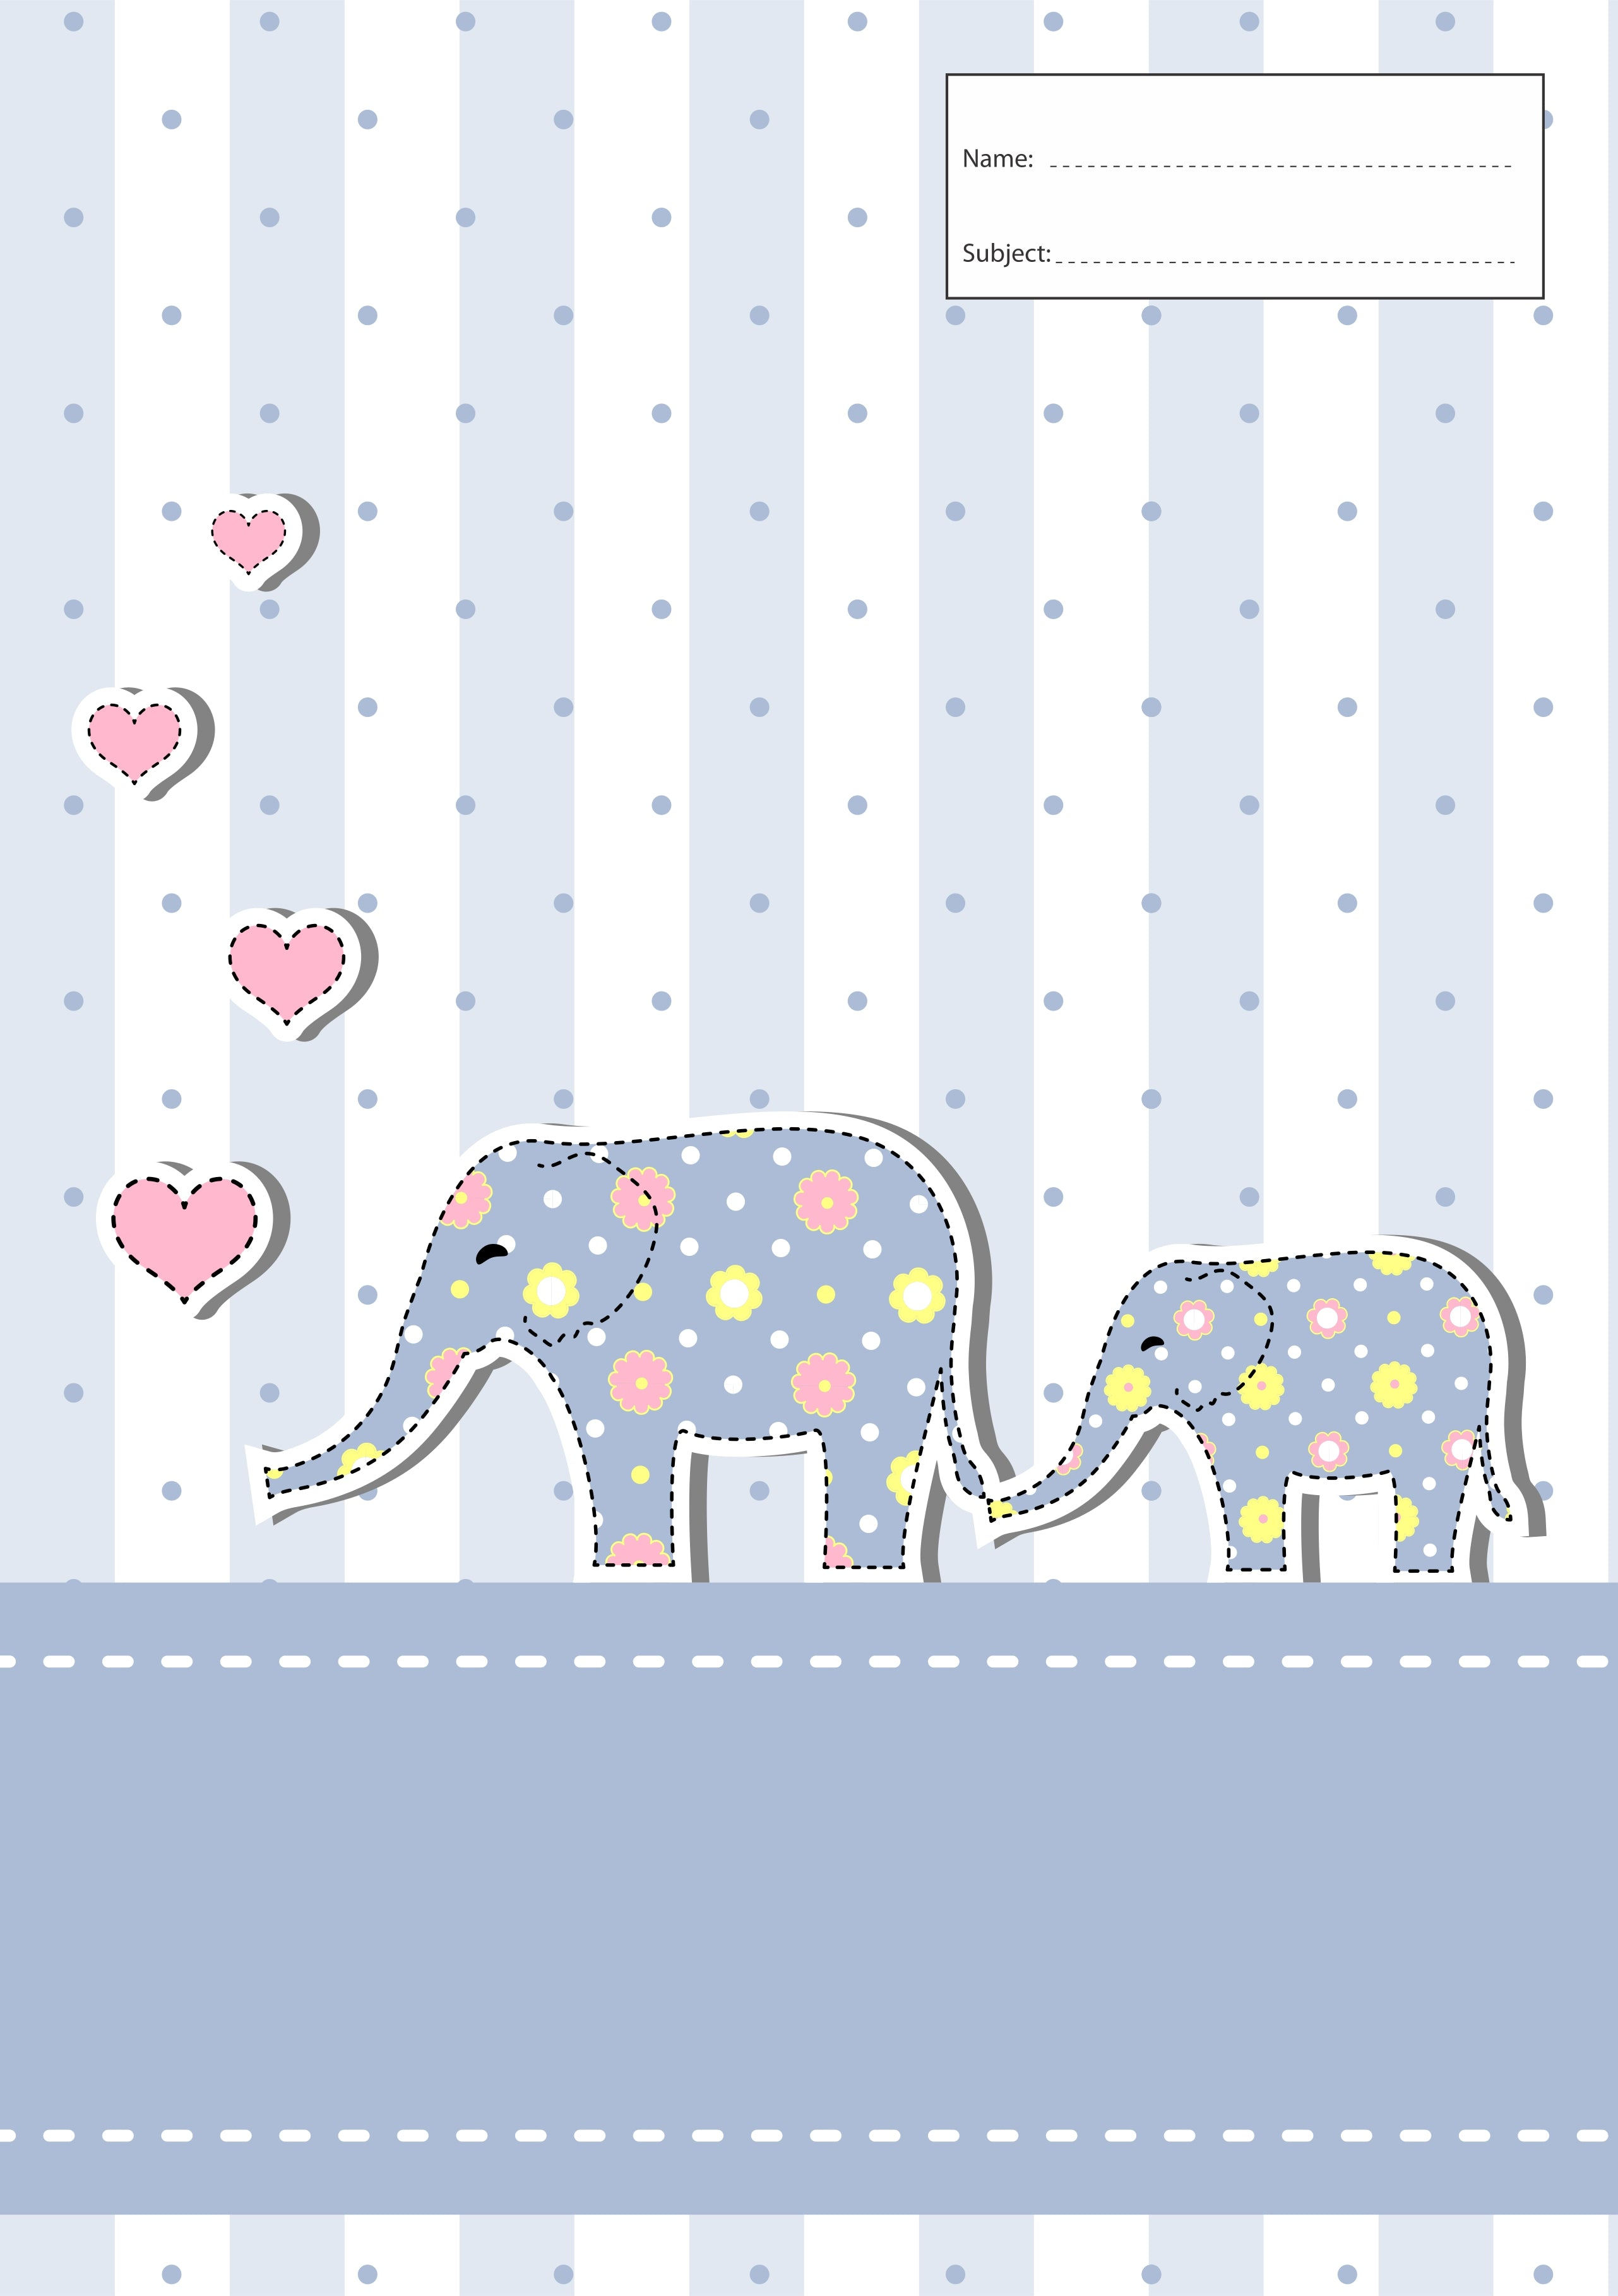 Book Cover - A4 - Elephants